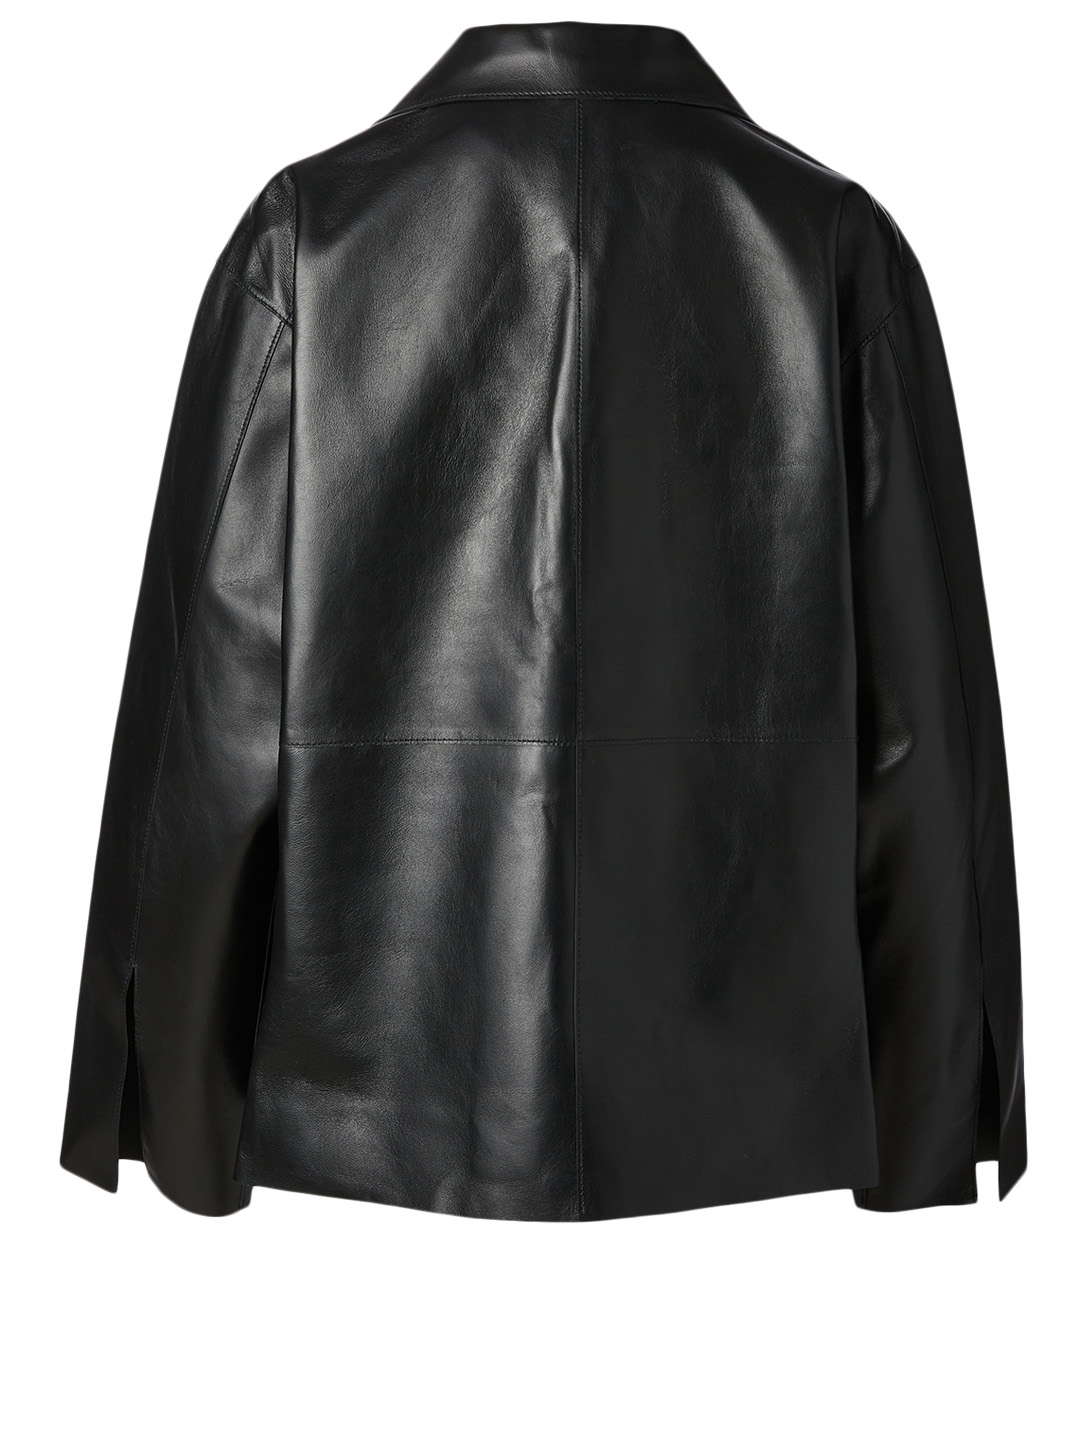 TOTÊME Avignon Leather Oversized Jacket Women's Black